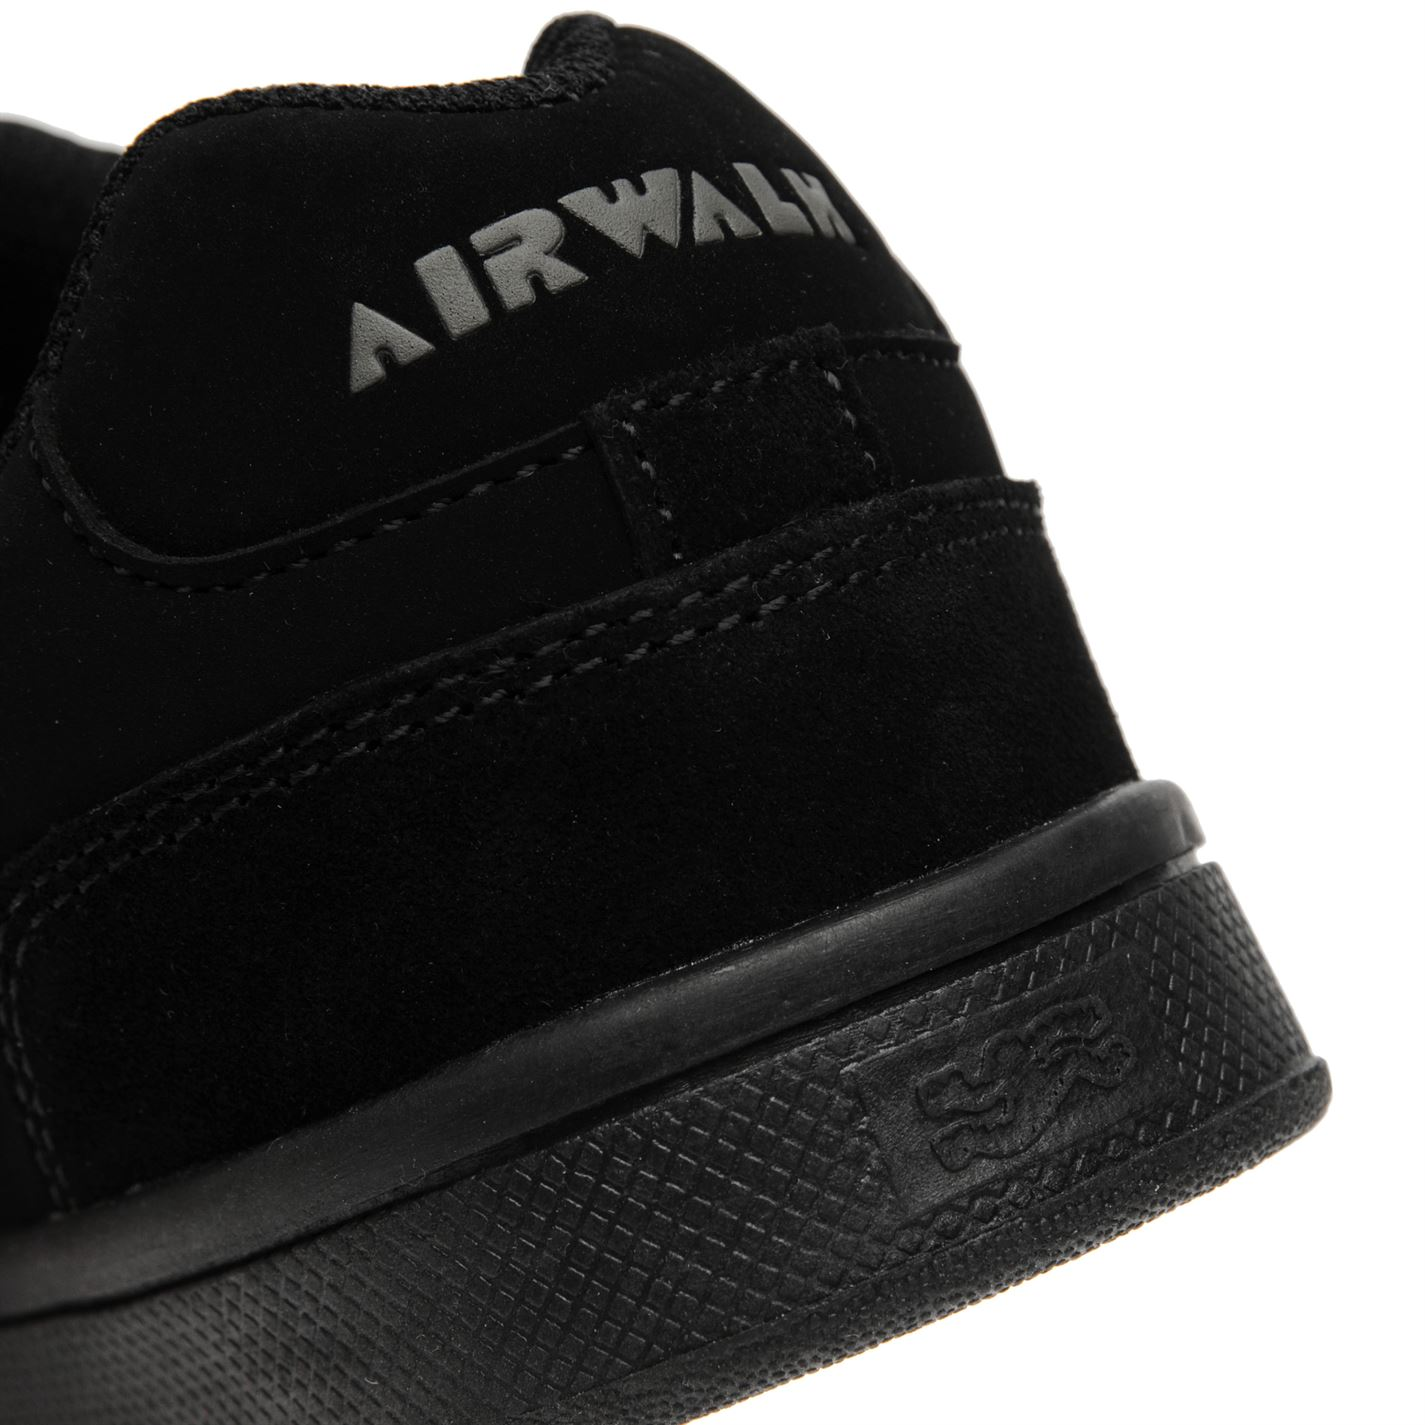 Airwalk-Mens-Brock-Skate-Shoes-Lace-Up-Suede-Accents-Sport-Casual-Trainers thumbnail 13